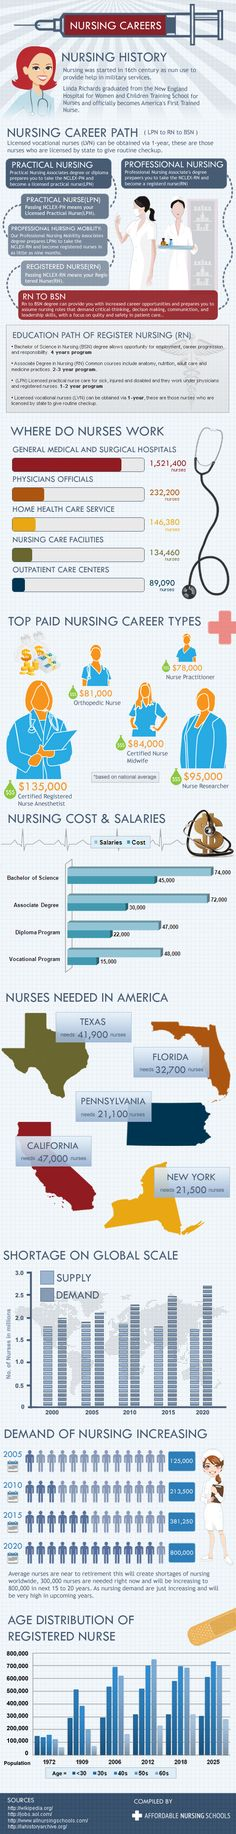 What are the different paths to a nursing career.  What degrees can you obtain through the different paths.